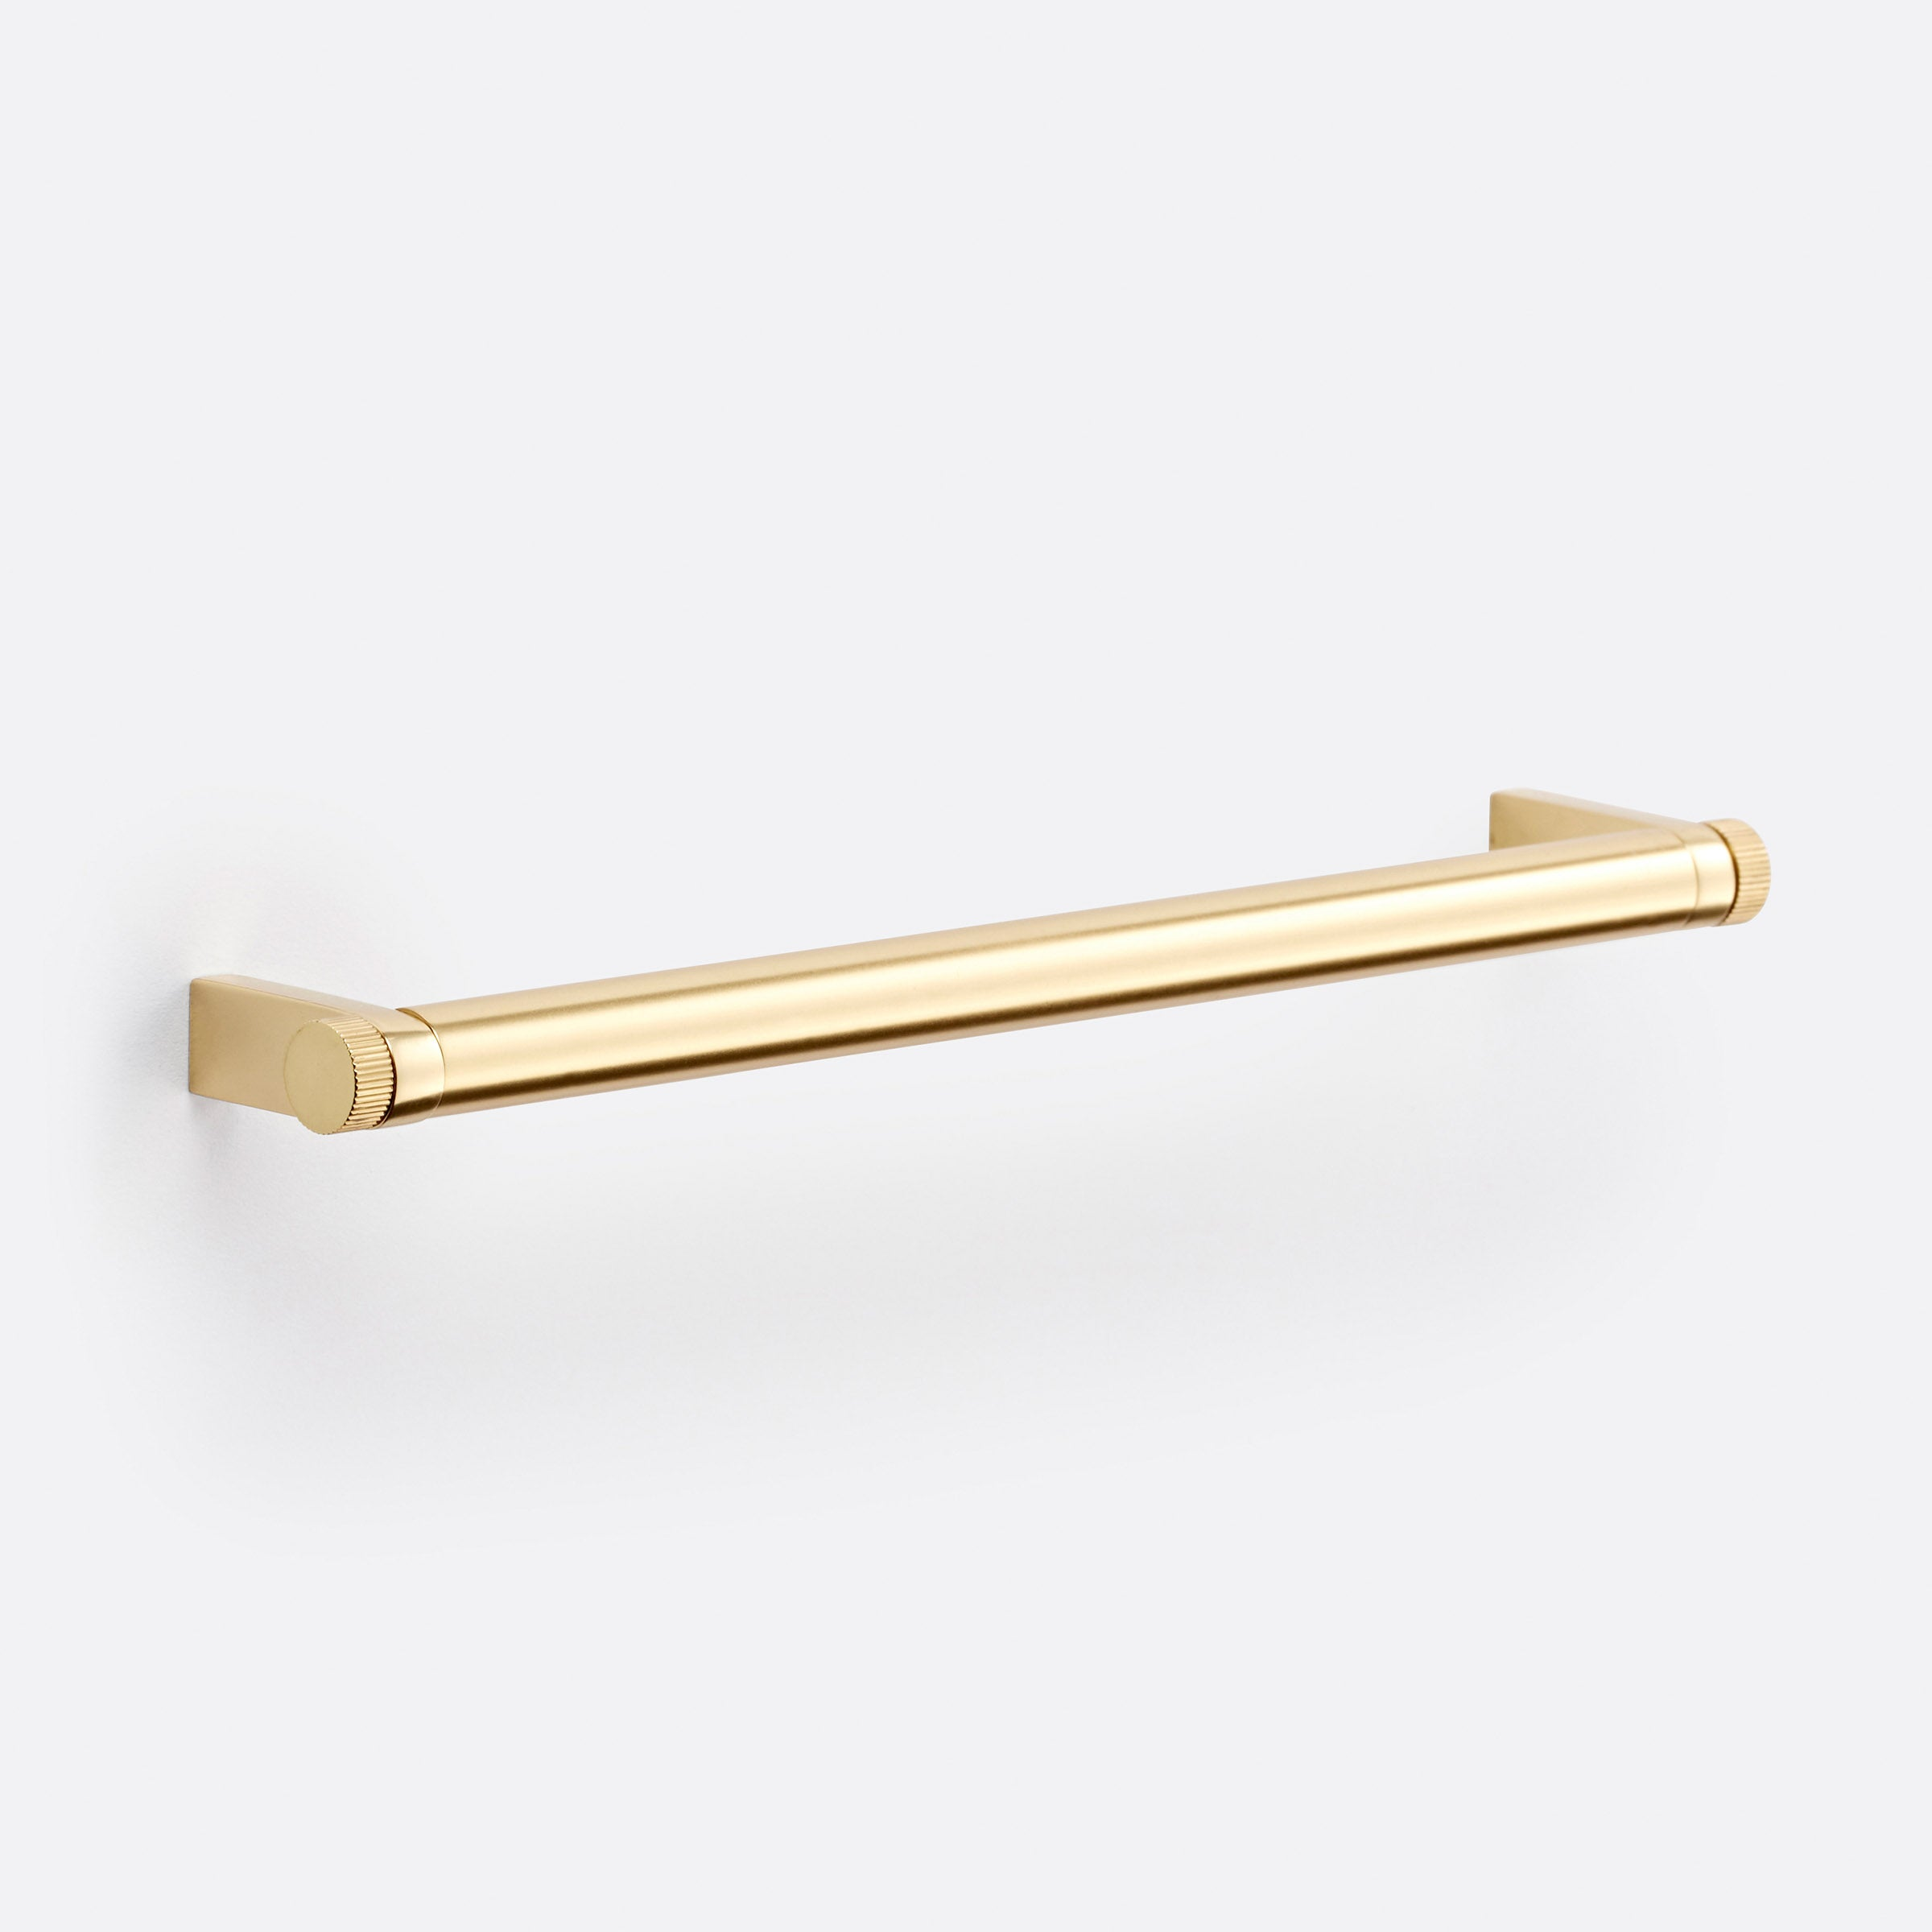 "West Slope Drawer Pull by Rejuvenation 8"" / Aged Brass"